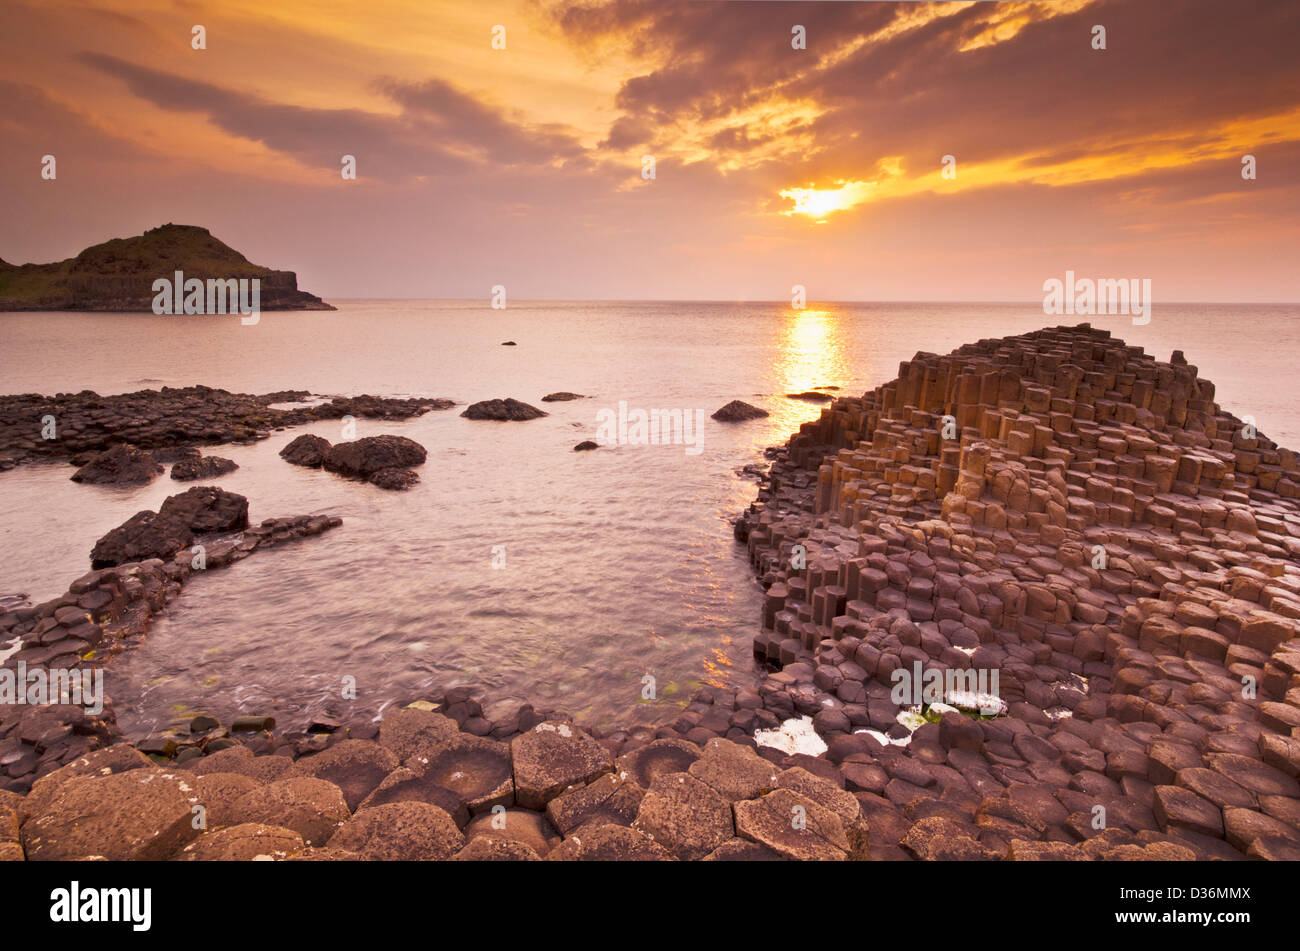 hexangonal basalt columns of the Giants Causeway north Antrim coast County Antrim Northern Ireland GB UK EU Europe - Stock Image